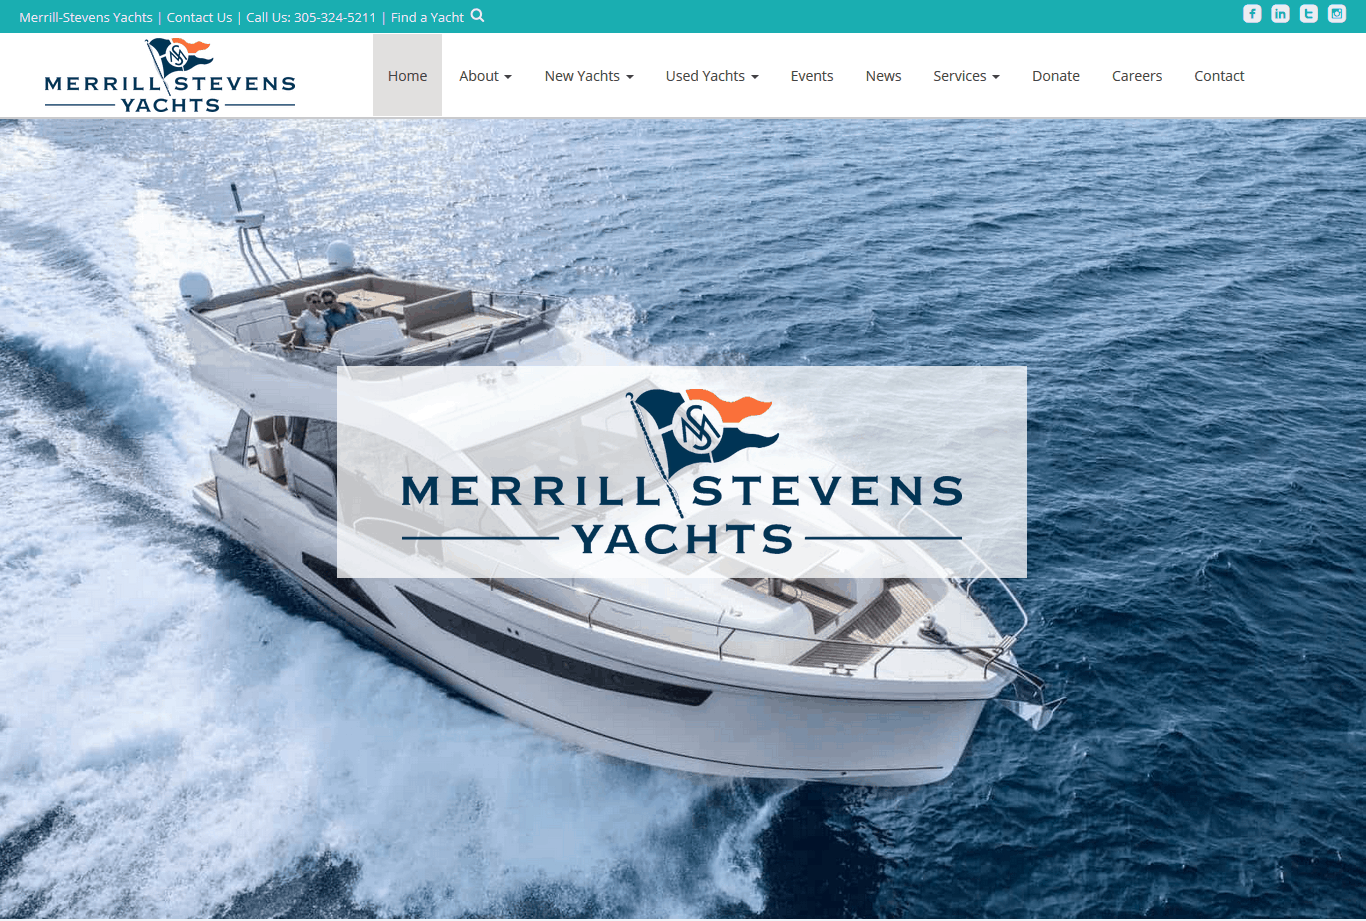 Merrill Stevens Yachts Miami Website by iSatisfy.com